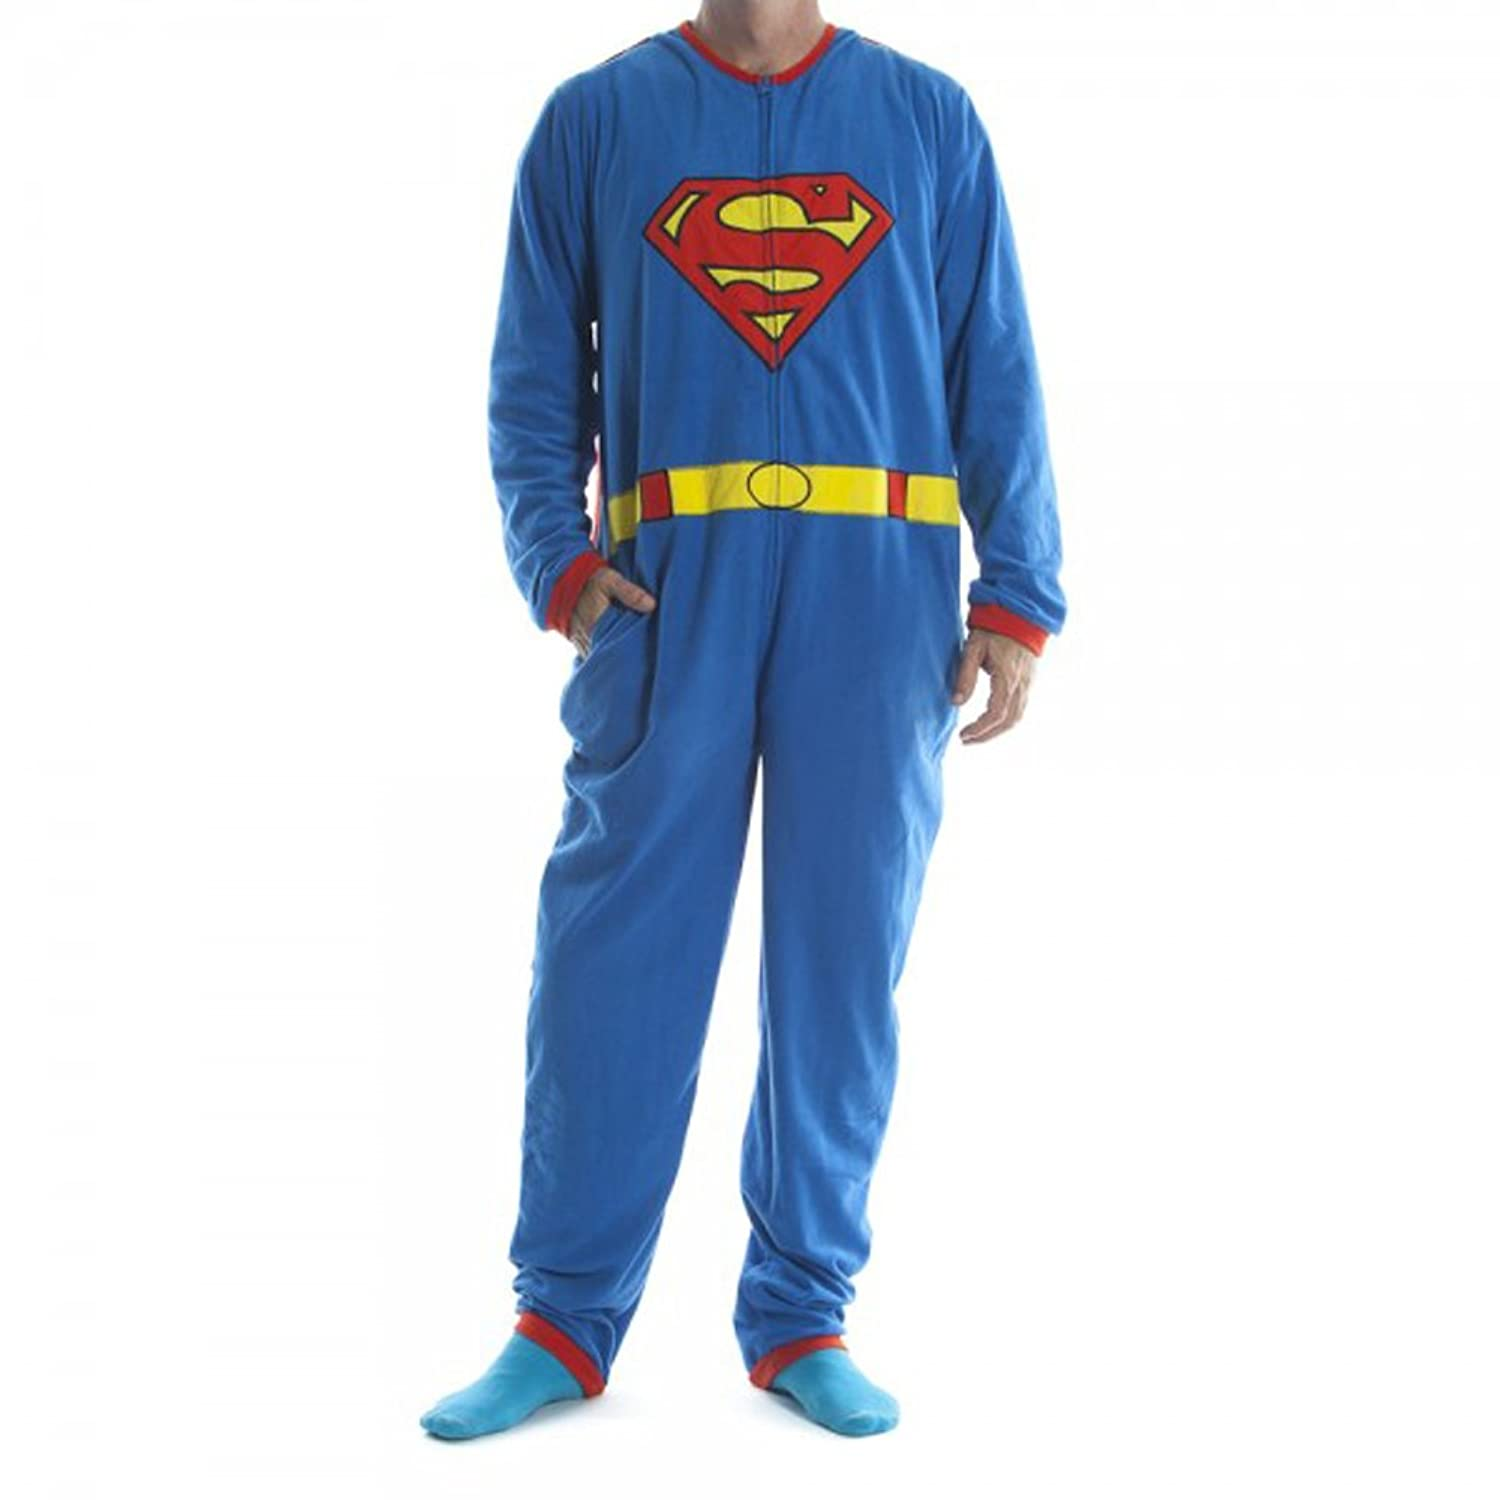 Amazon.com: Superman Blue Union Suit Mens Caped Pajama: Clothing